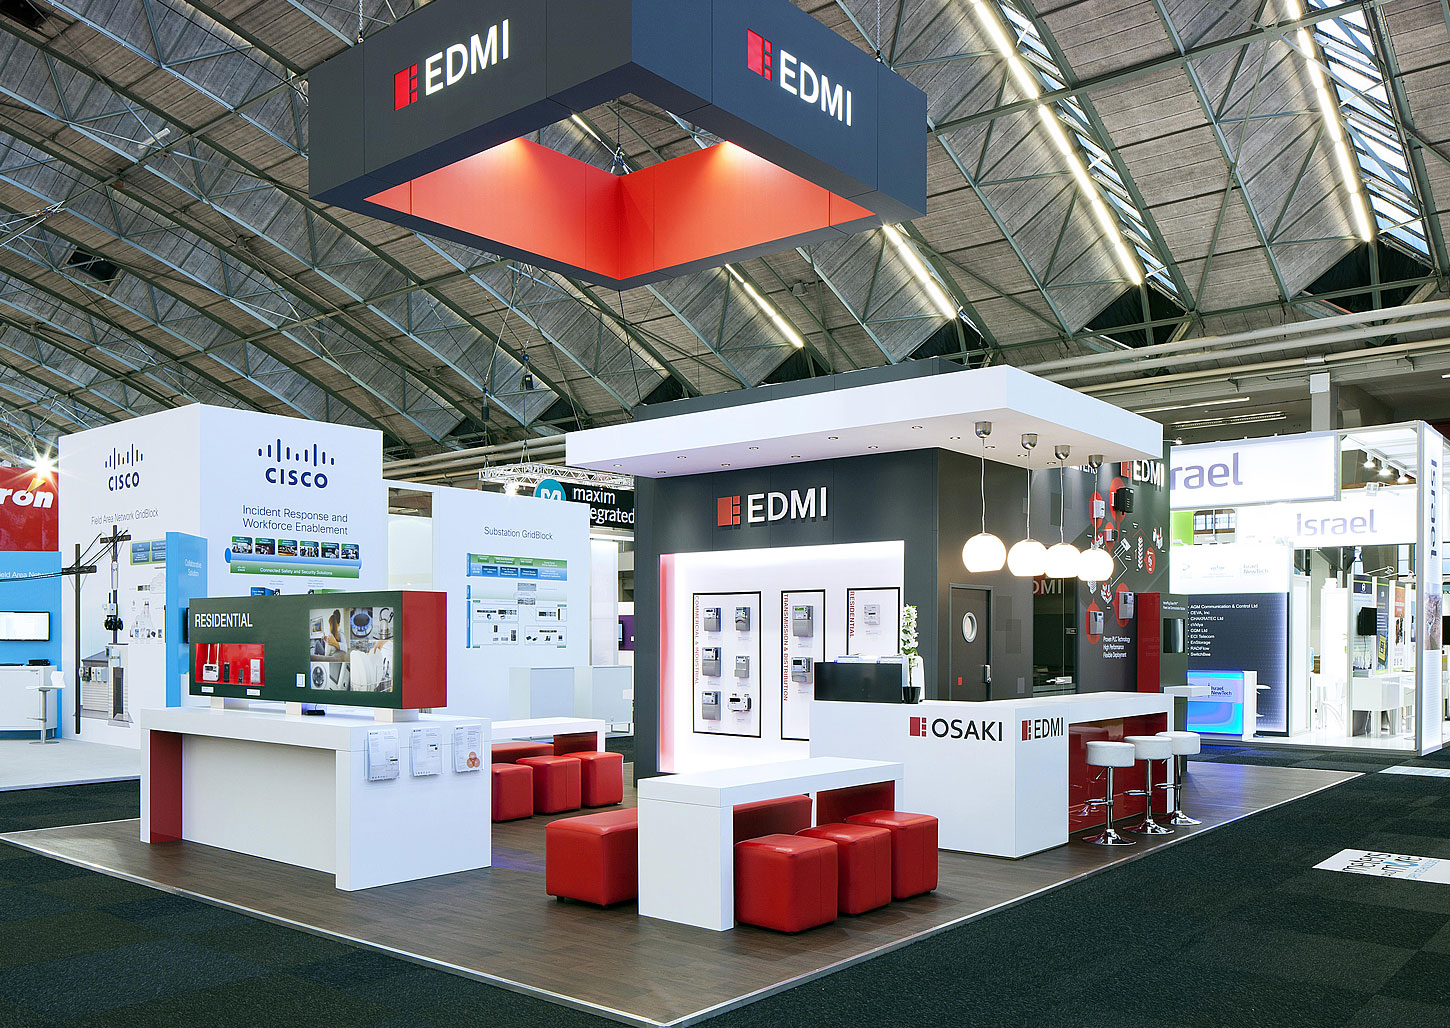 Exhibition Booth London : Infinite design consultants edmi europe exhibition